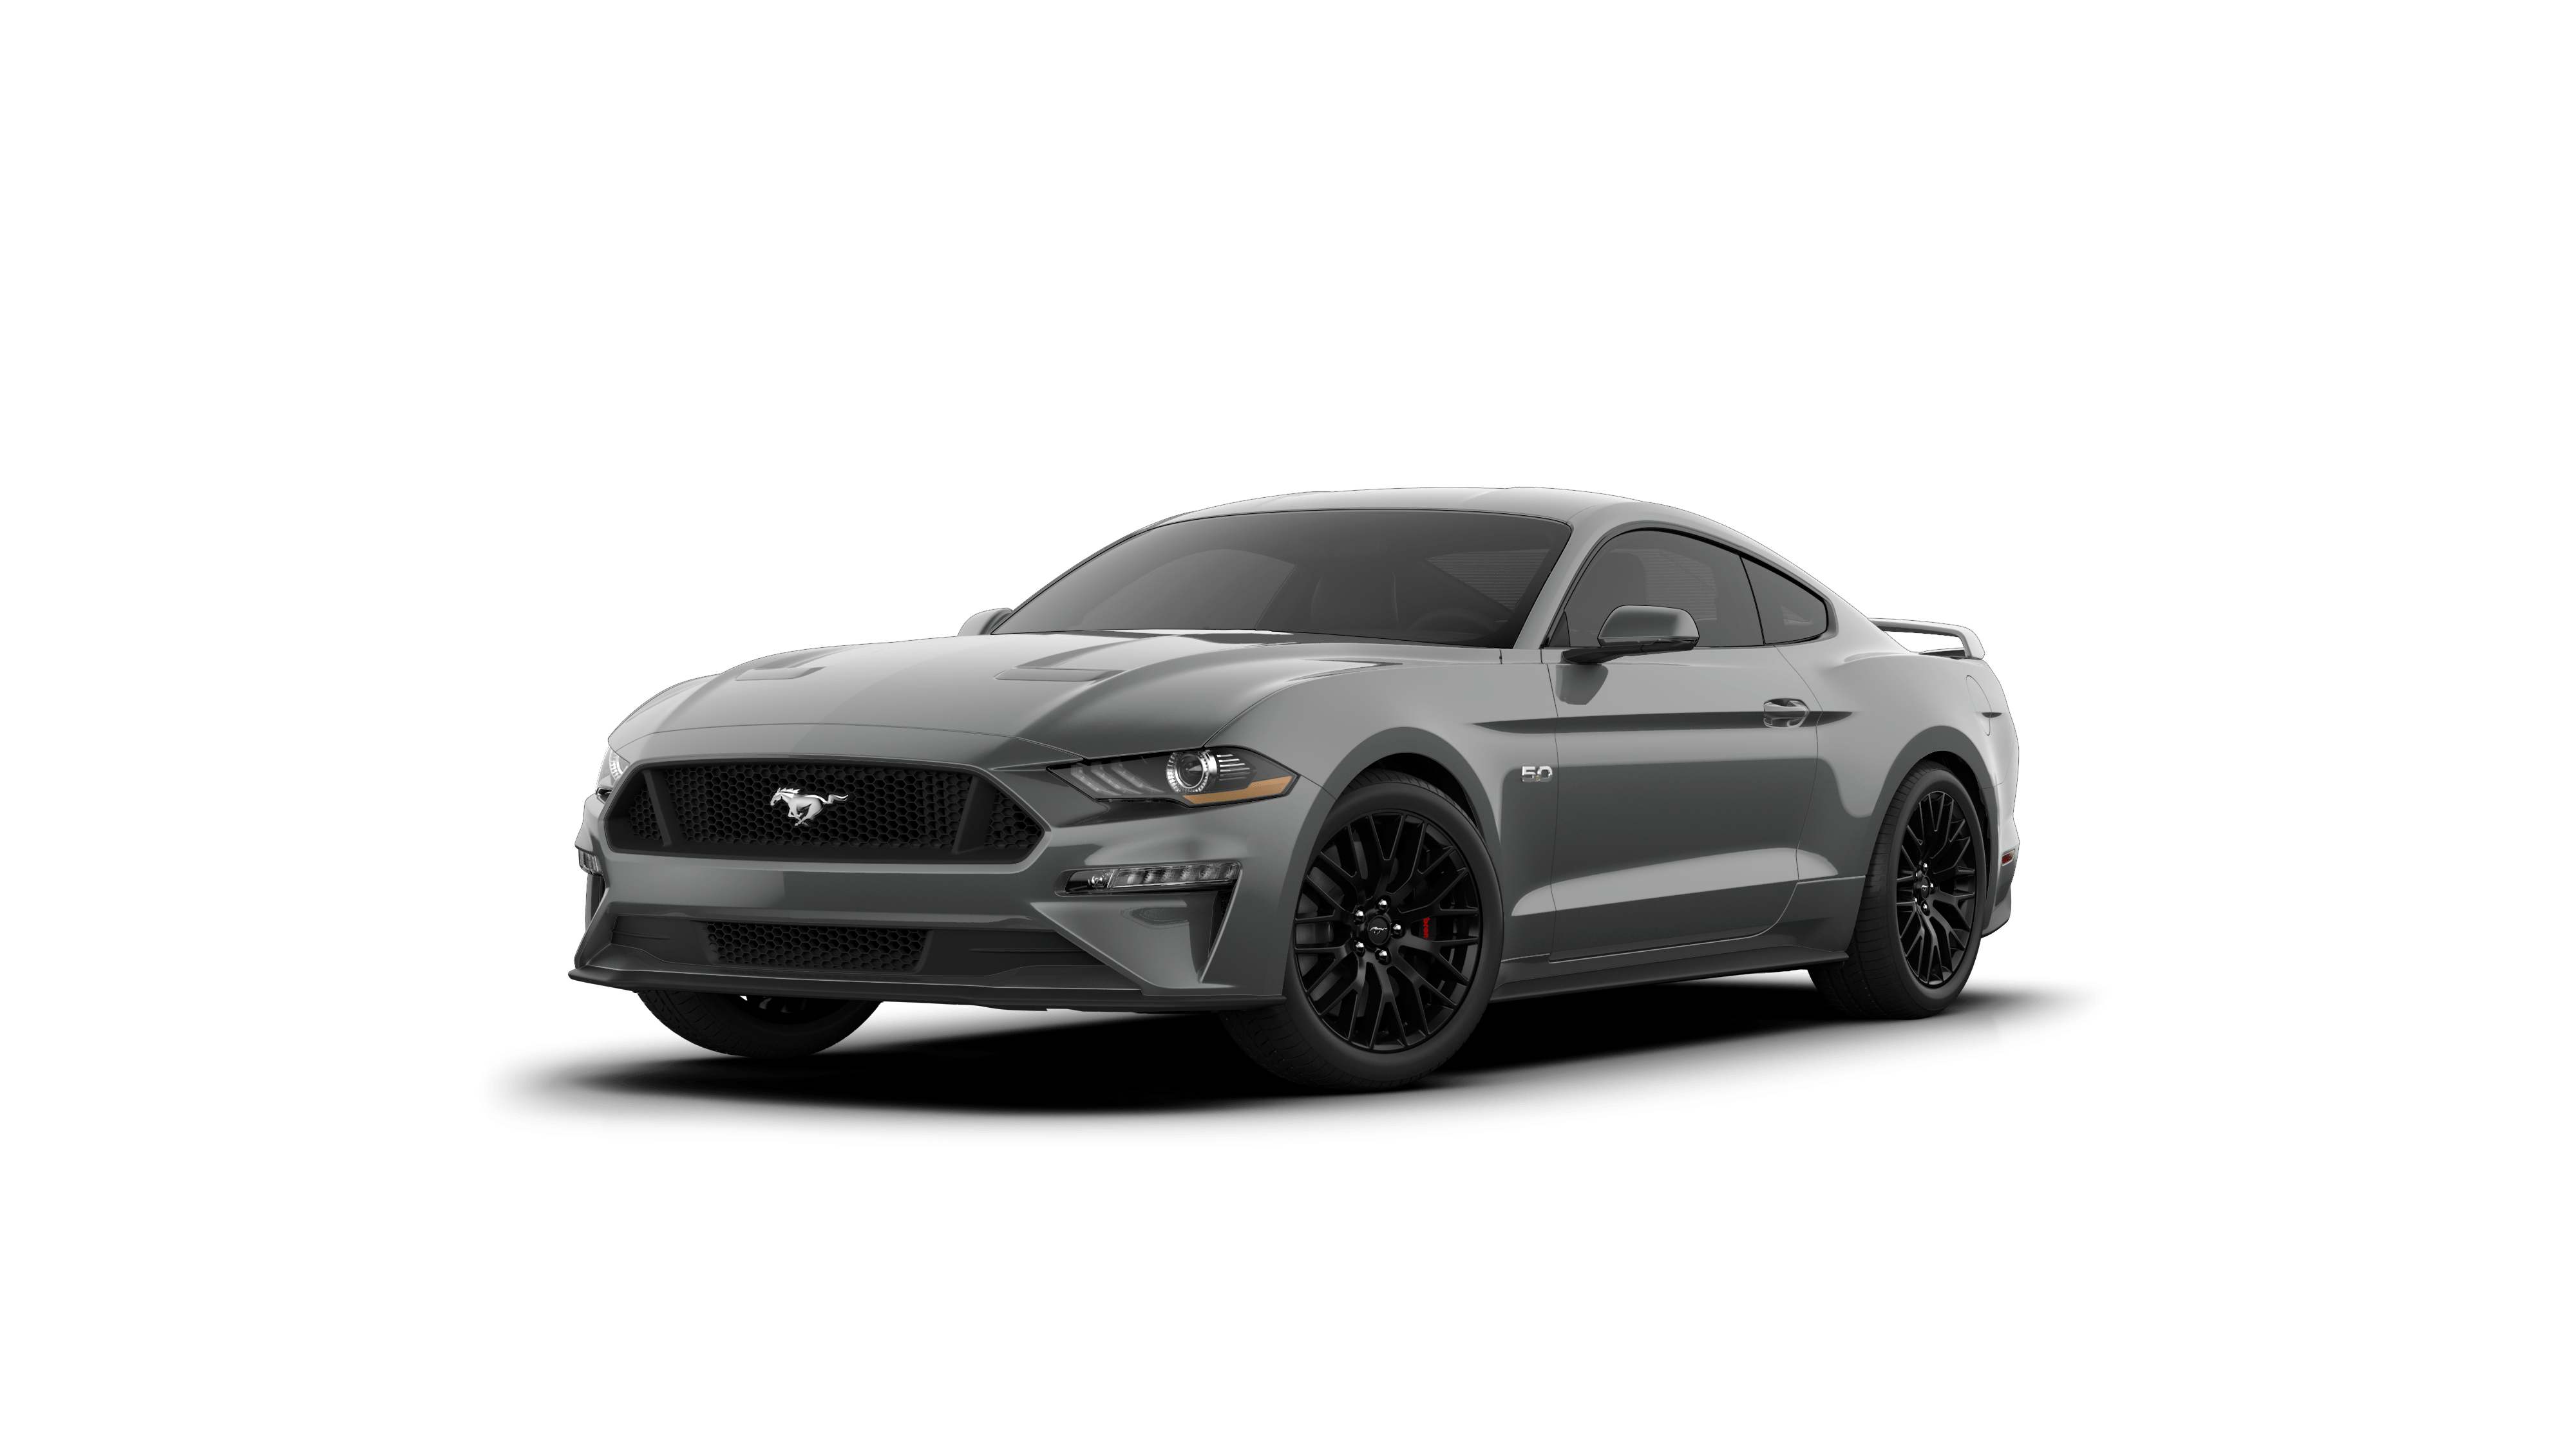 2020 Ford Mustang Vehicle Photo in Quakertown, PA 18951-1403